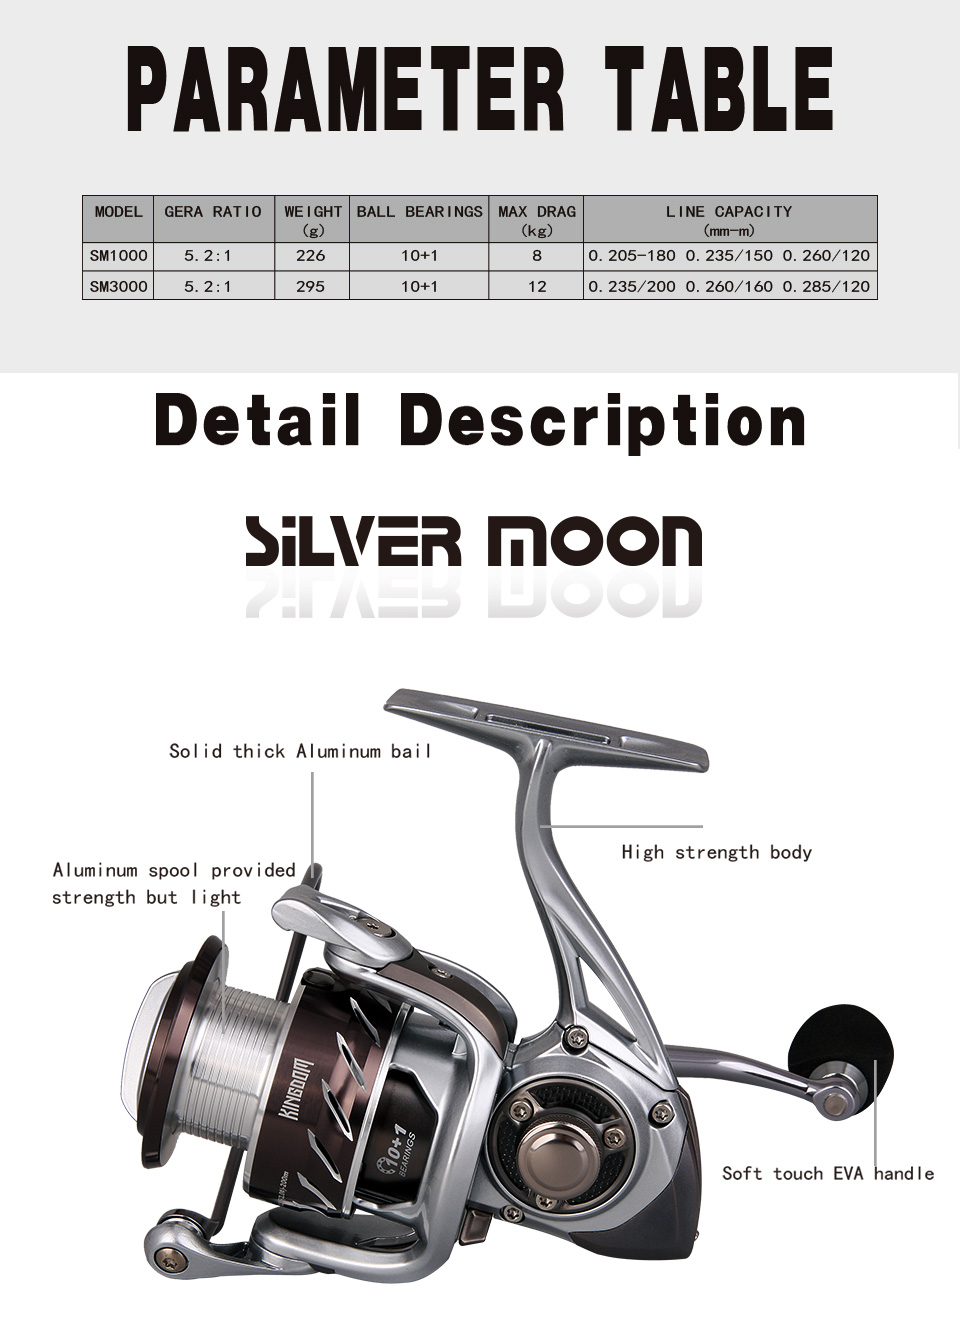 Kingdom Carbon Fiber Bait Casting Fishing Reel 10+1BB 5.21 226g 295g High Speed Fishing Reels Spinning Saltwater (1)